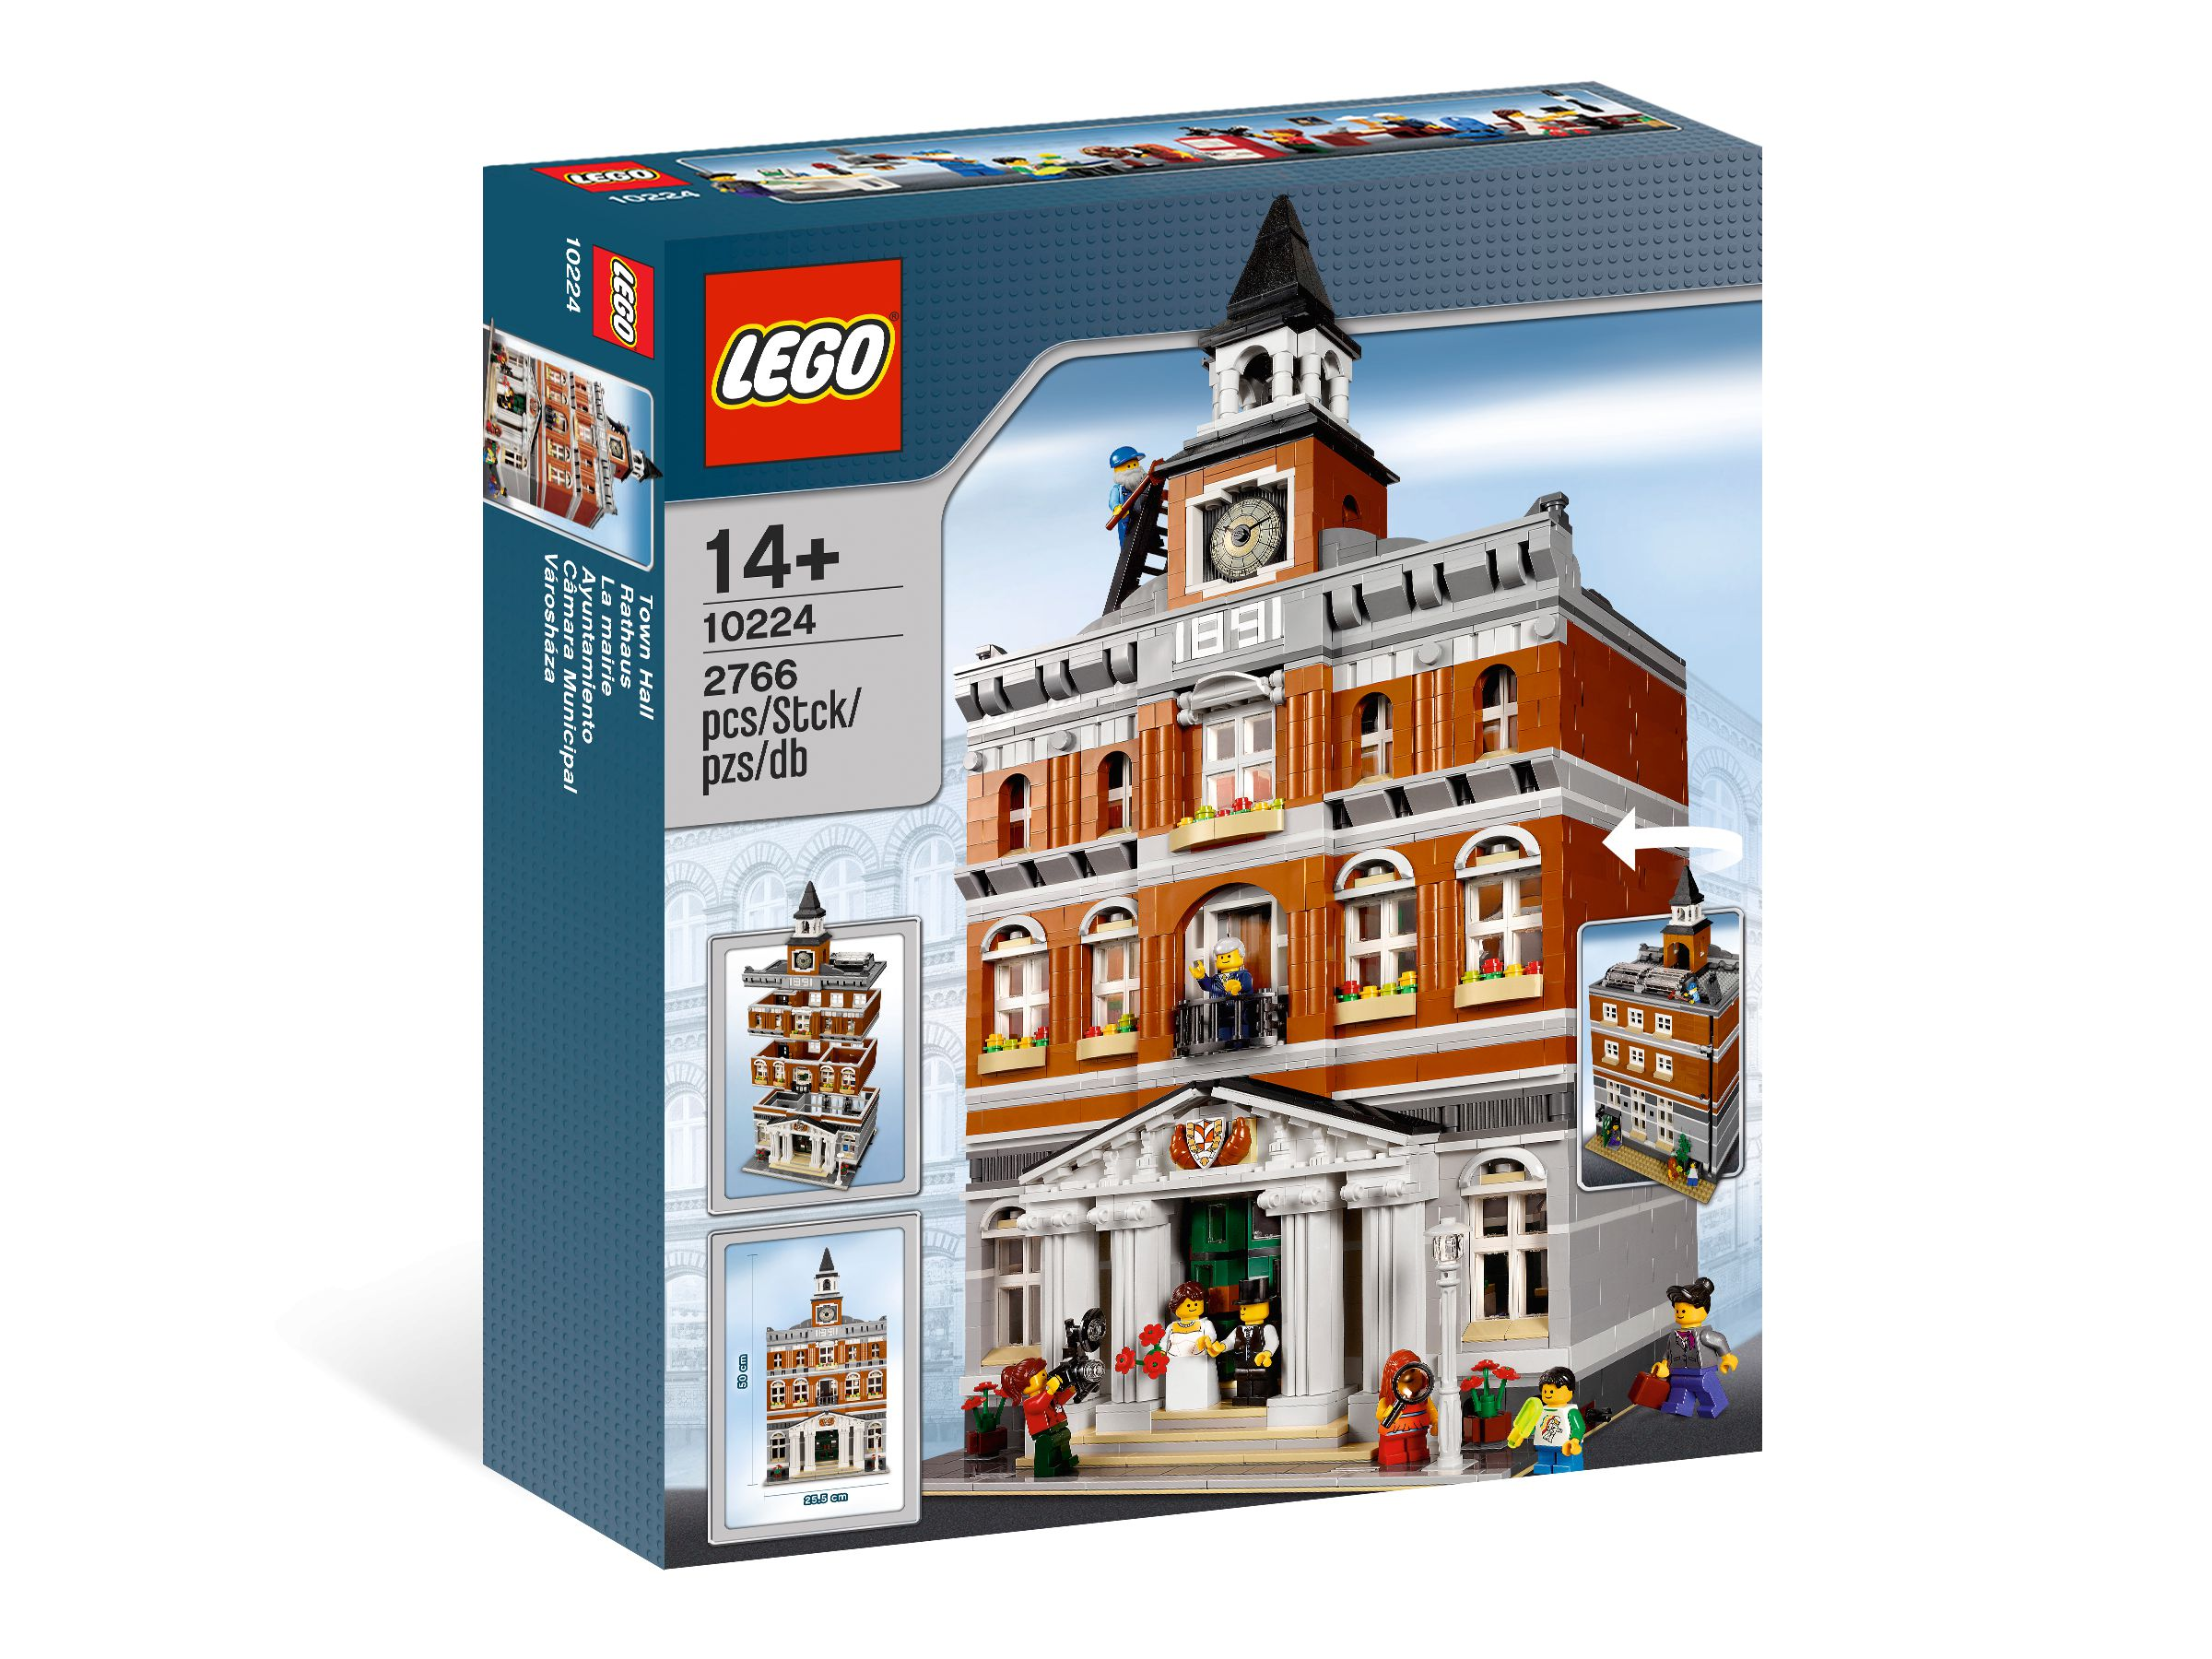 LEGO Advanced Models 10224 Rathaus LEGO_10224_alt1.jpg